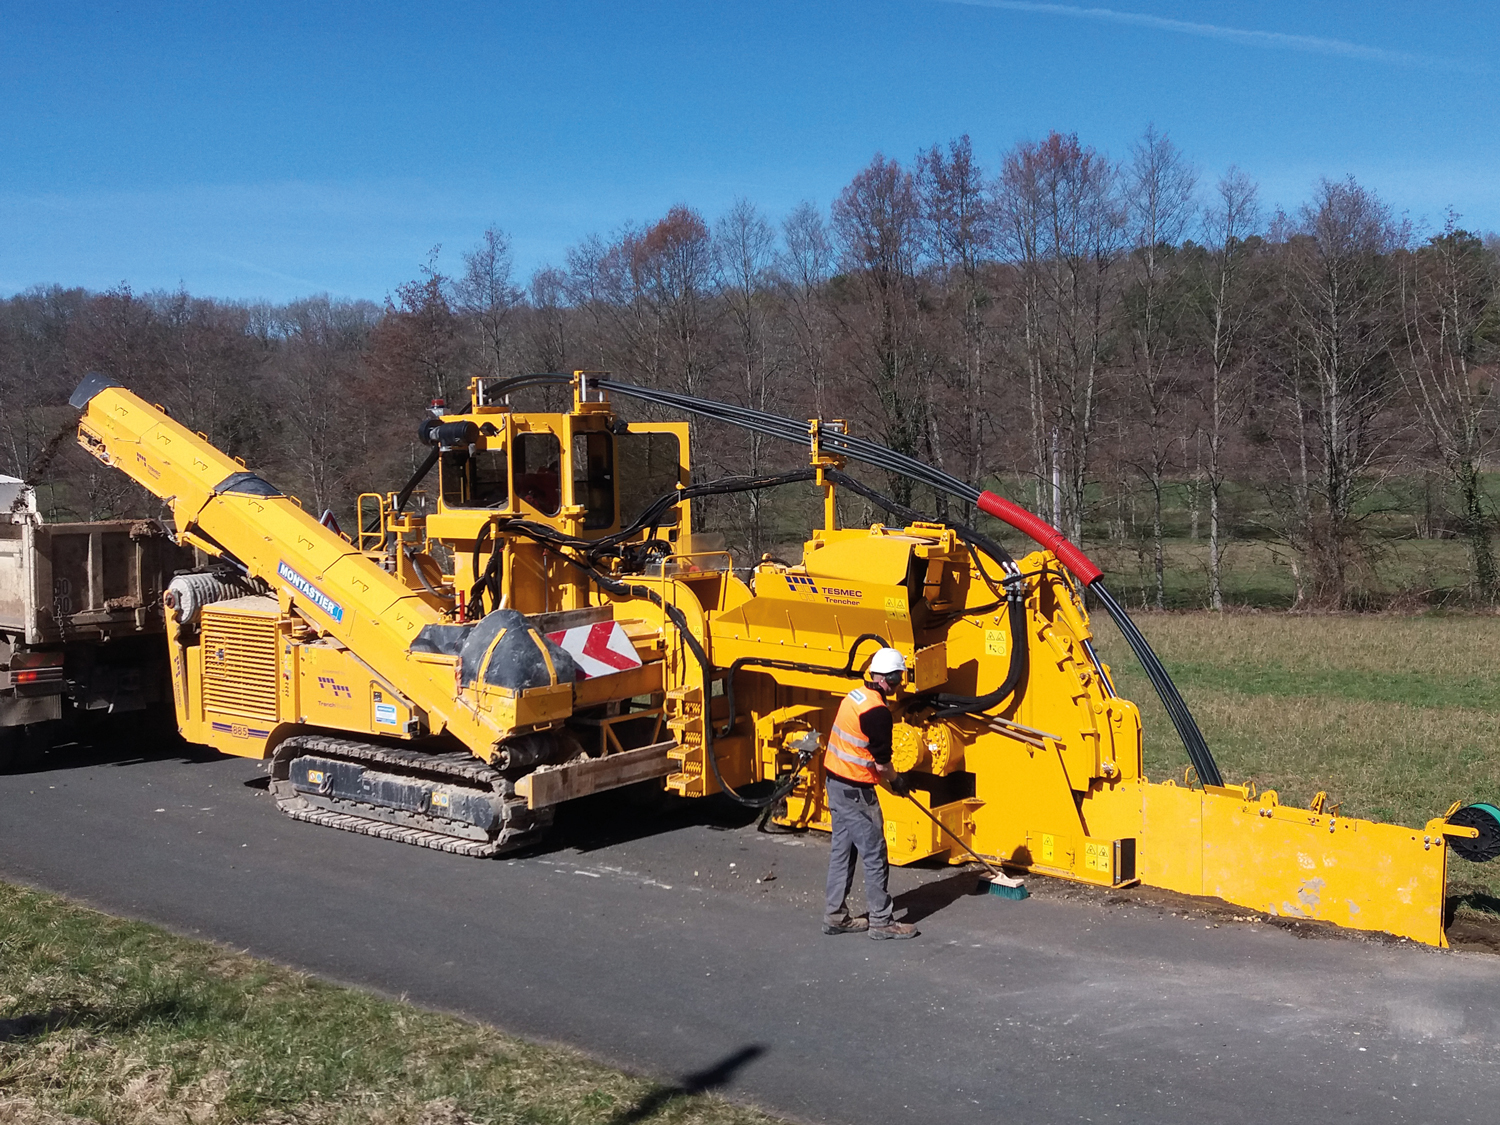 Tesmec 950R T1000 Rocksaw Trencher for Cable Laying Jobs